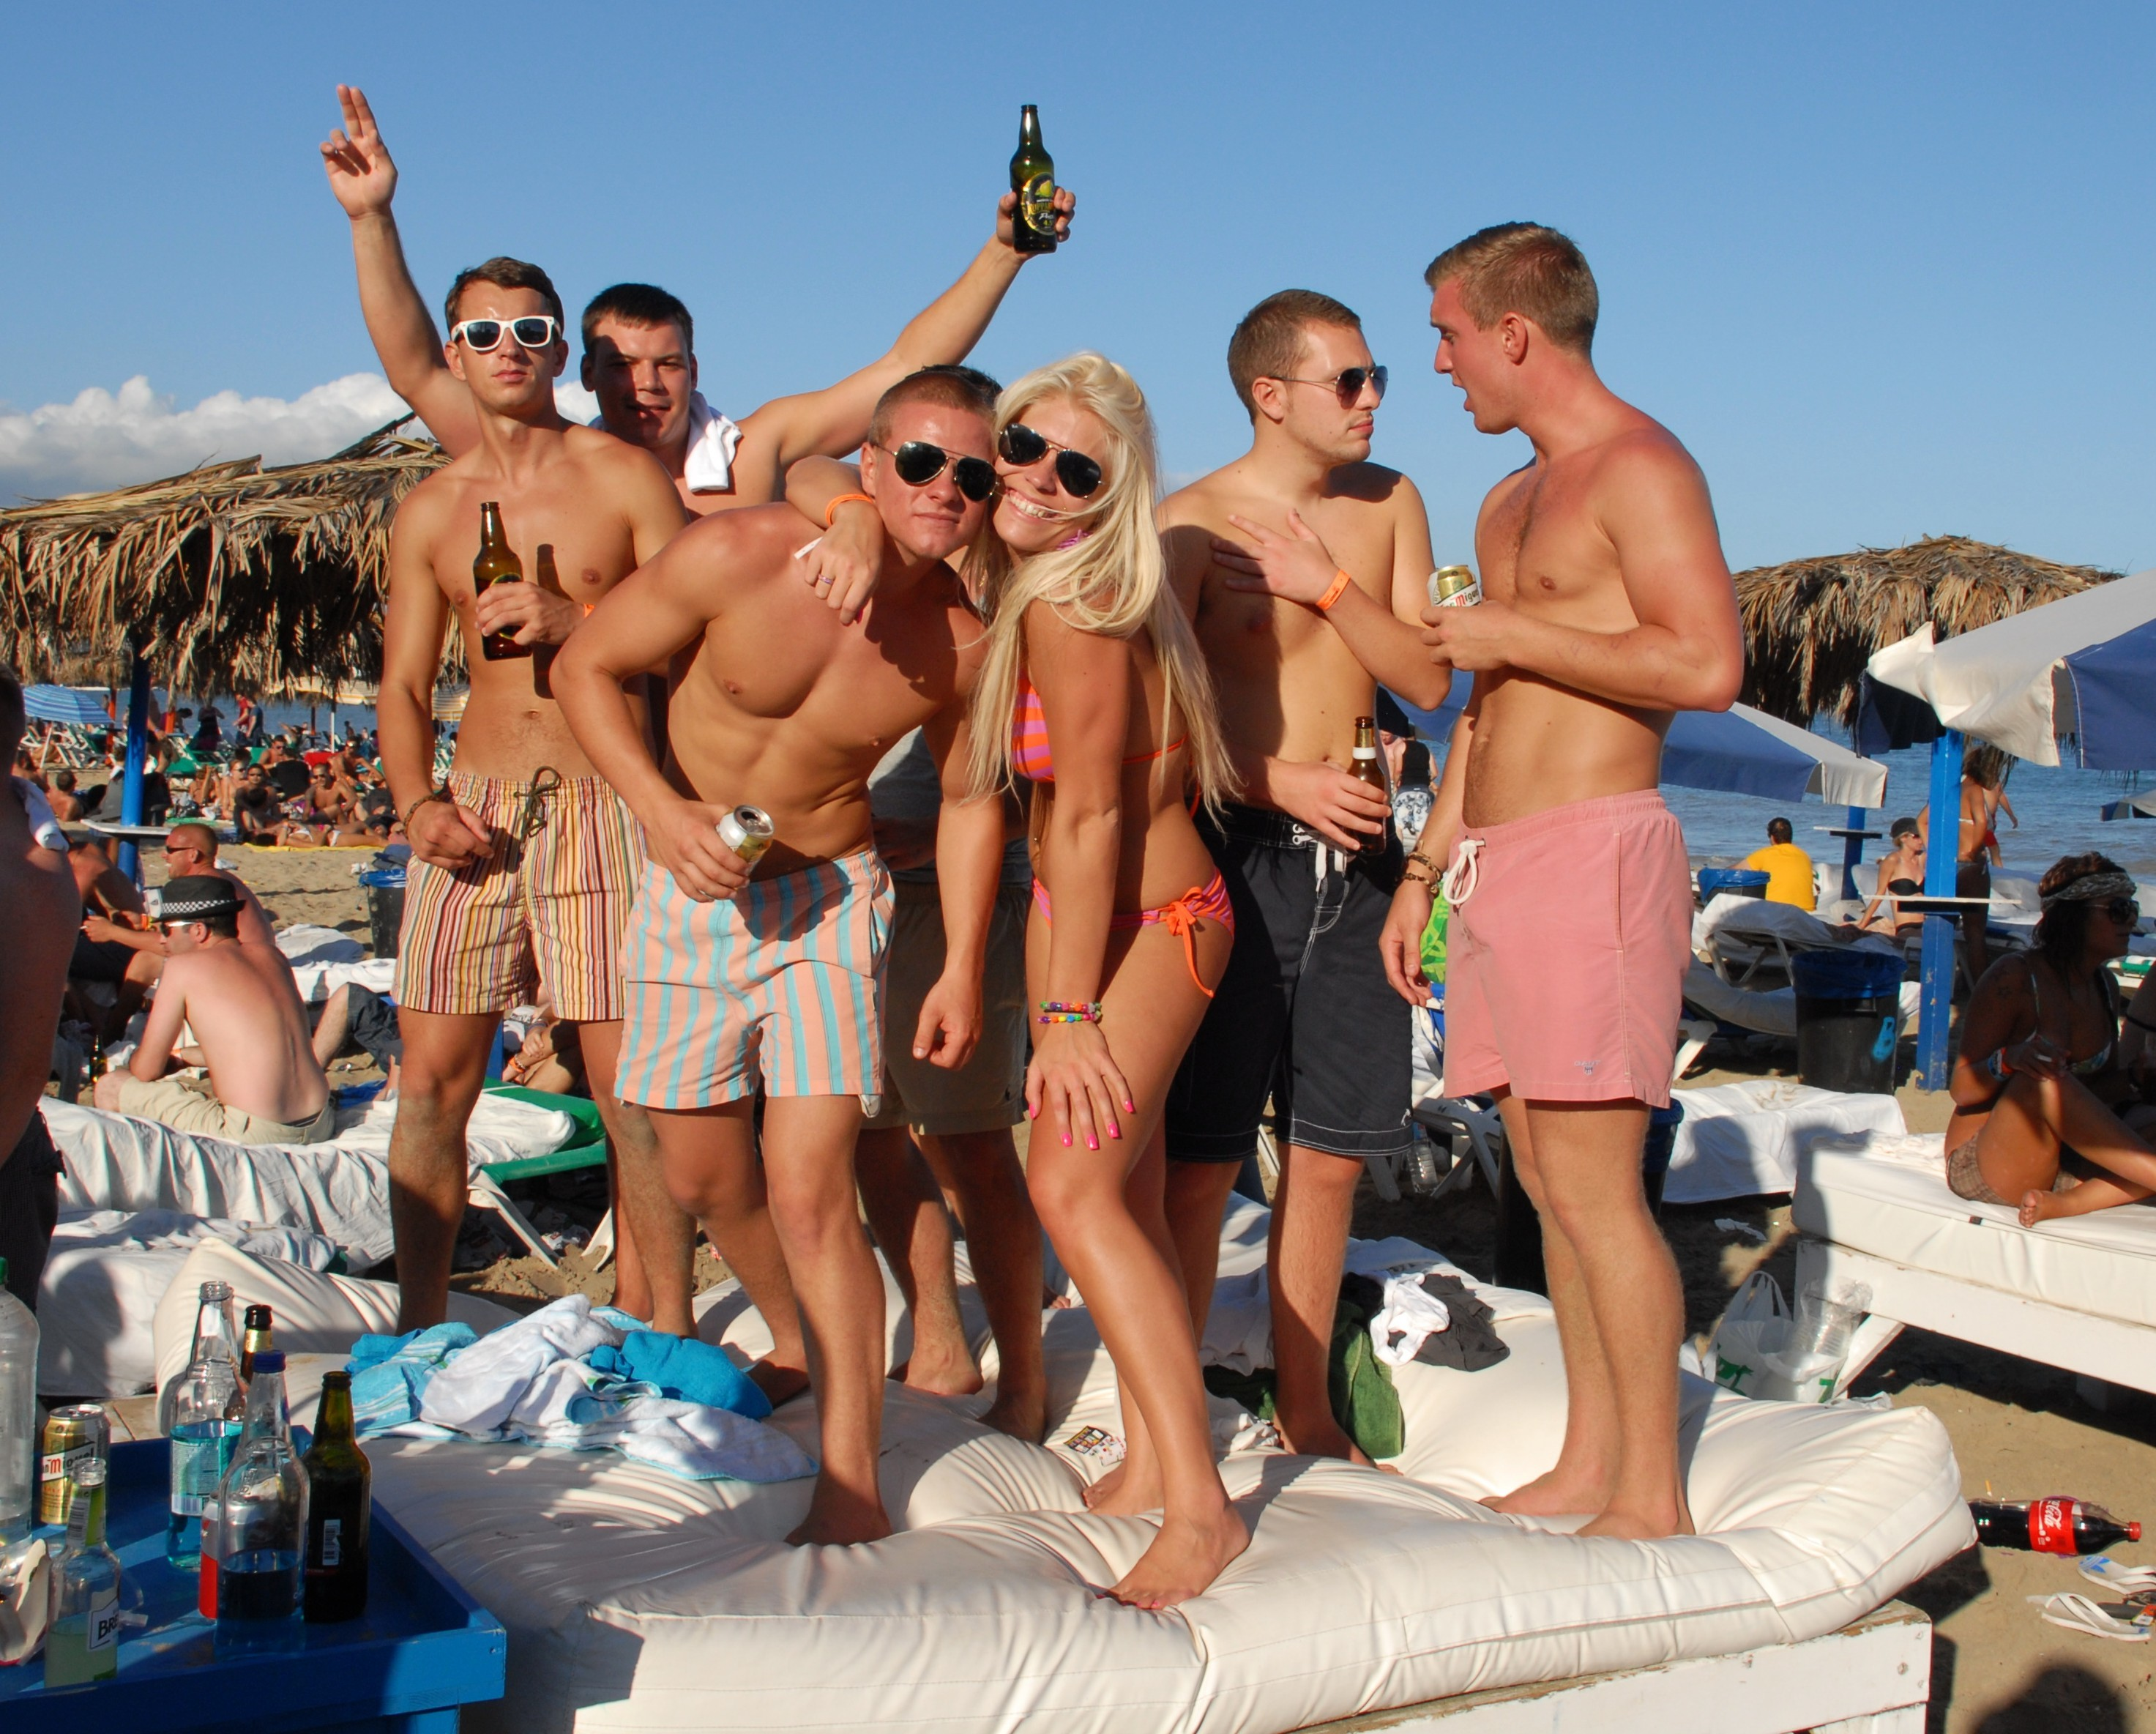 Partygoers in Ibiza. Credit: PA